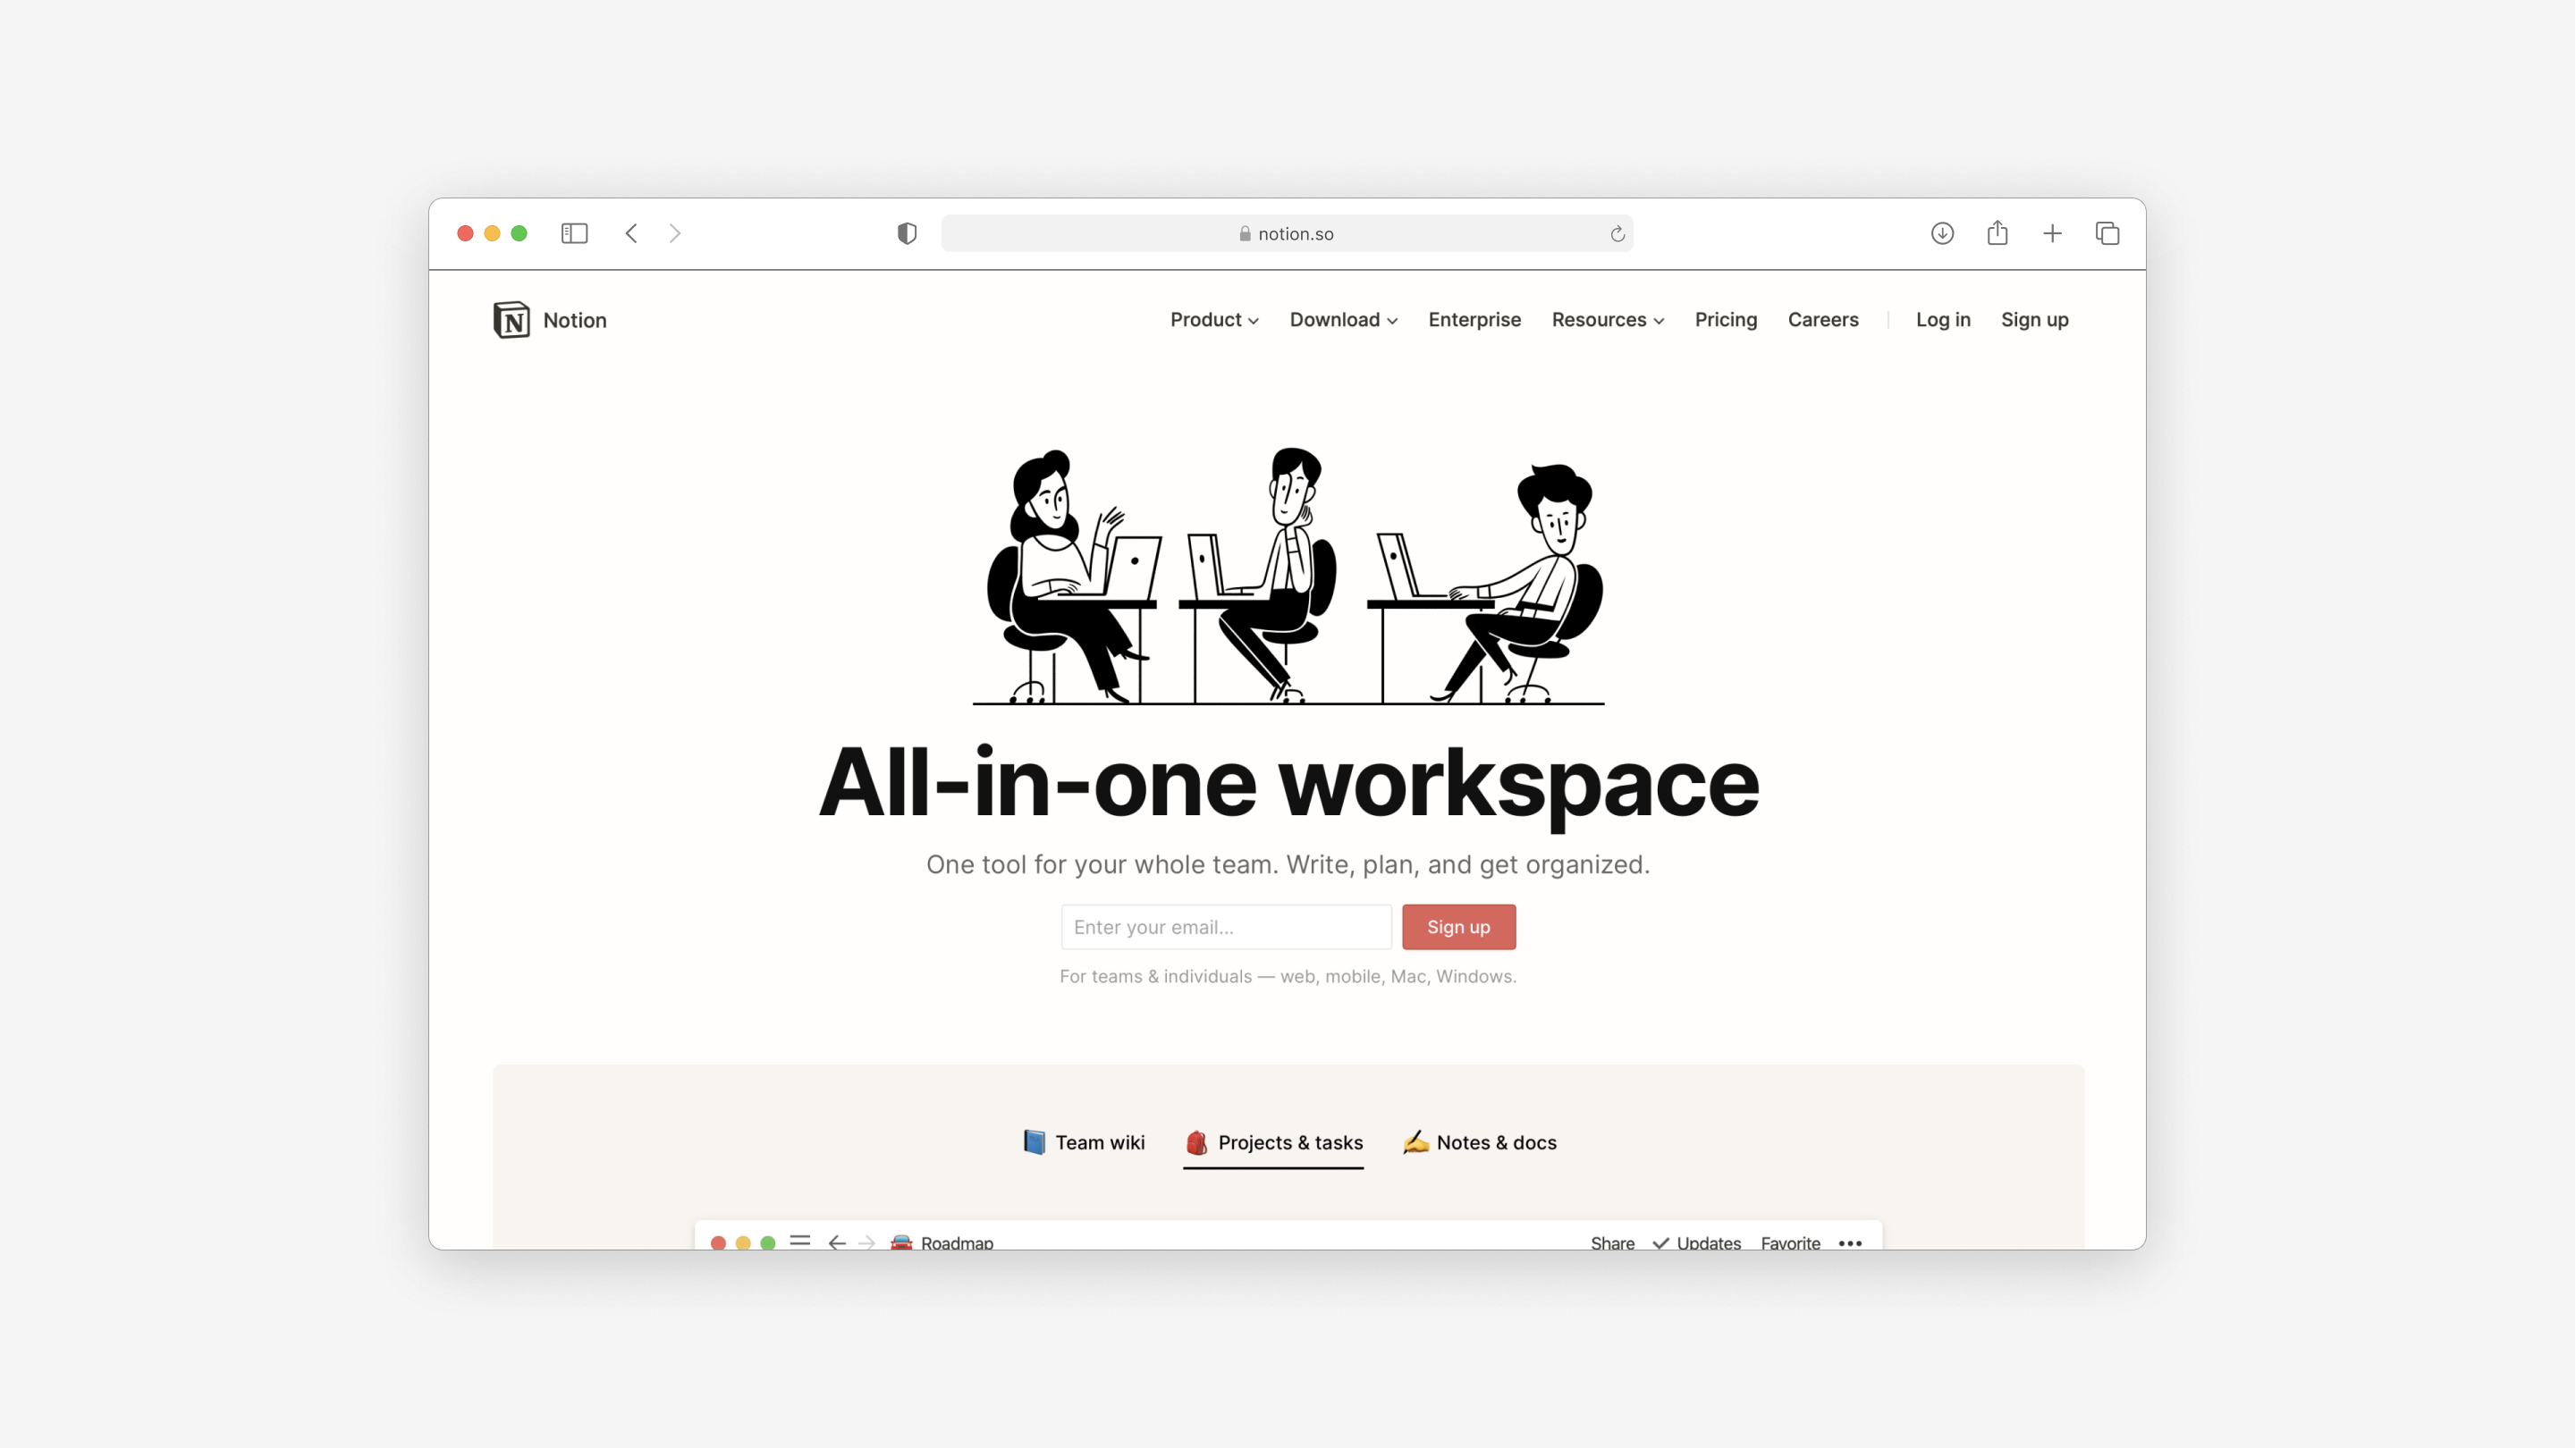 the website for Notion is a great, stylish B2B website